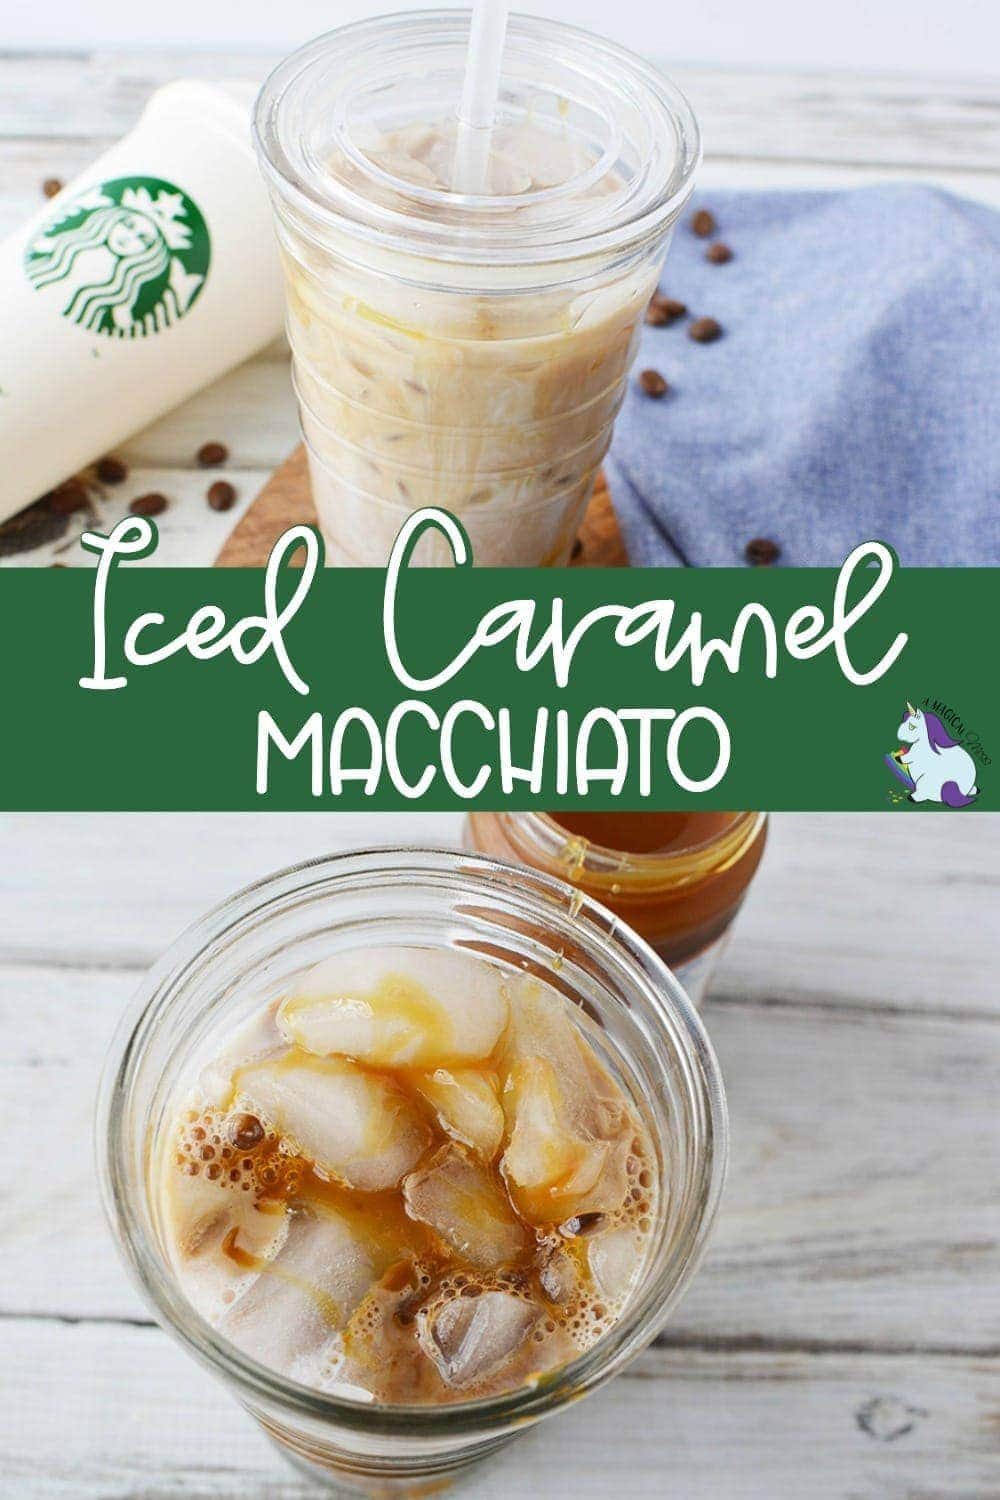 Glass of Iced Caramel Macchiato